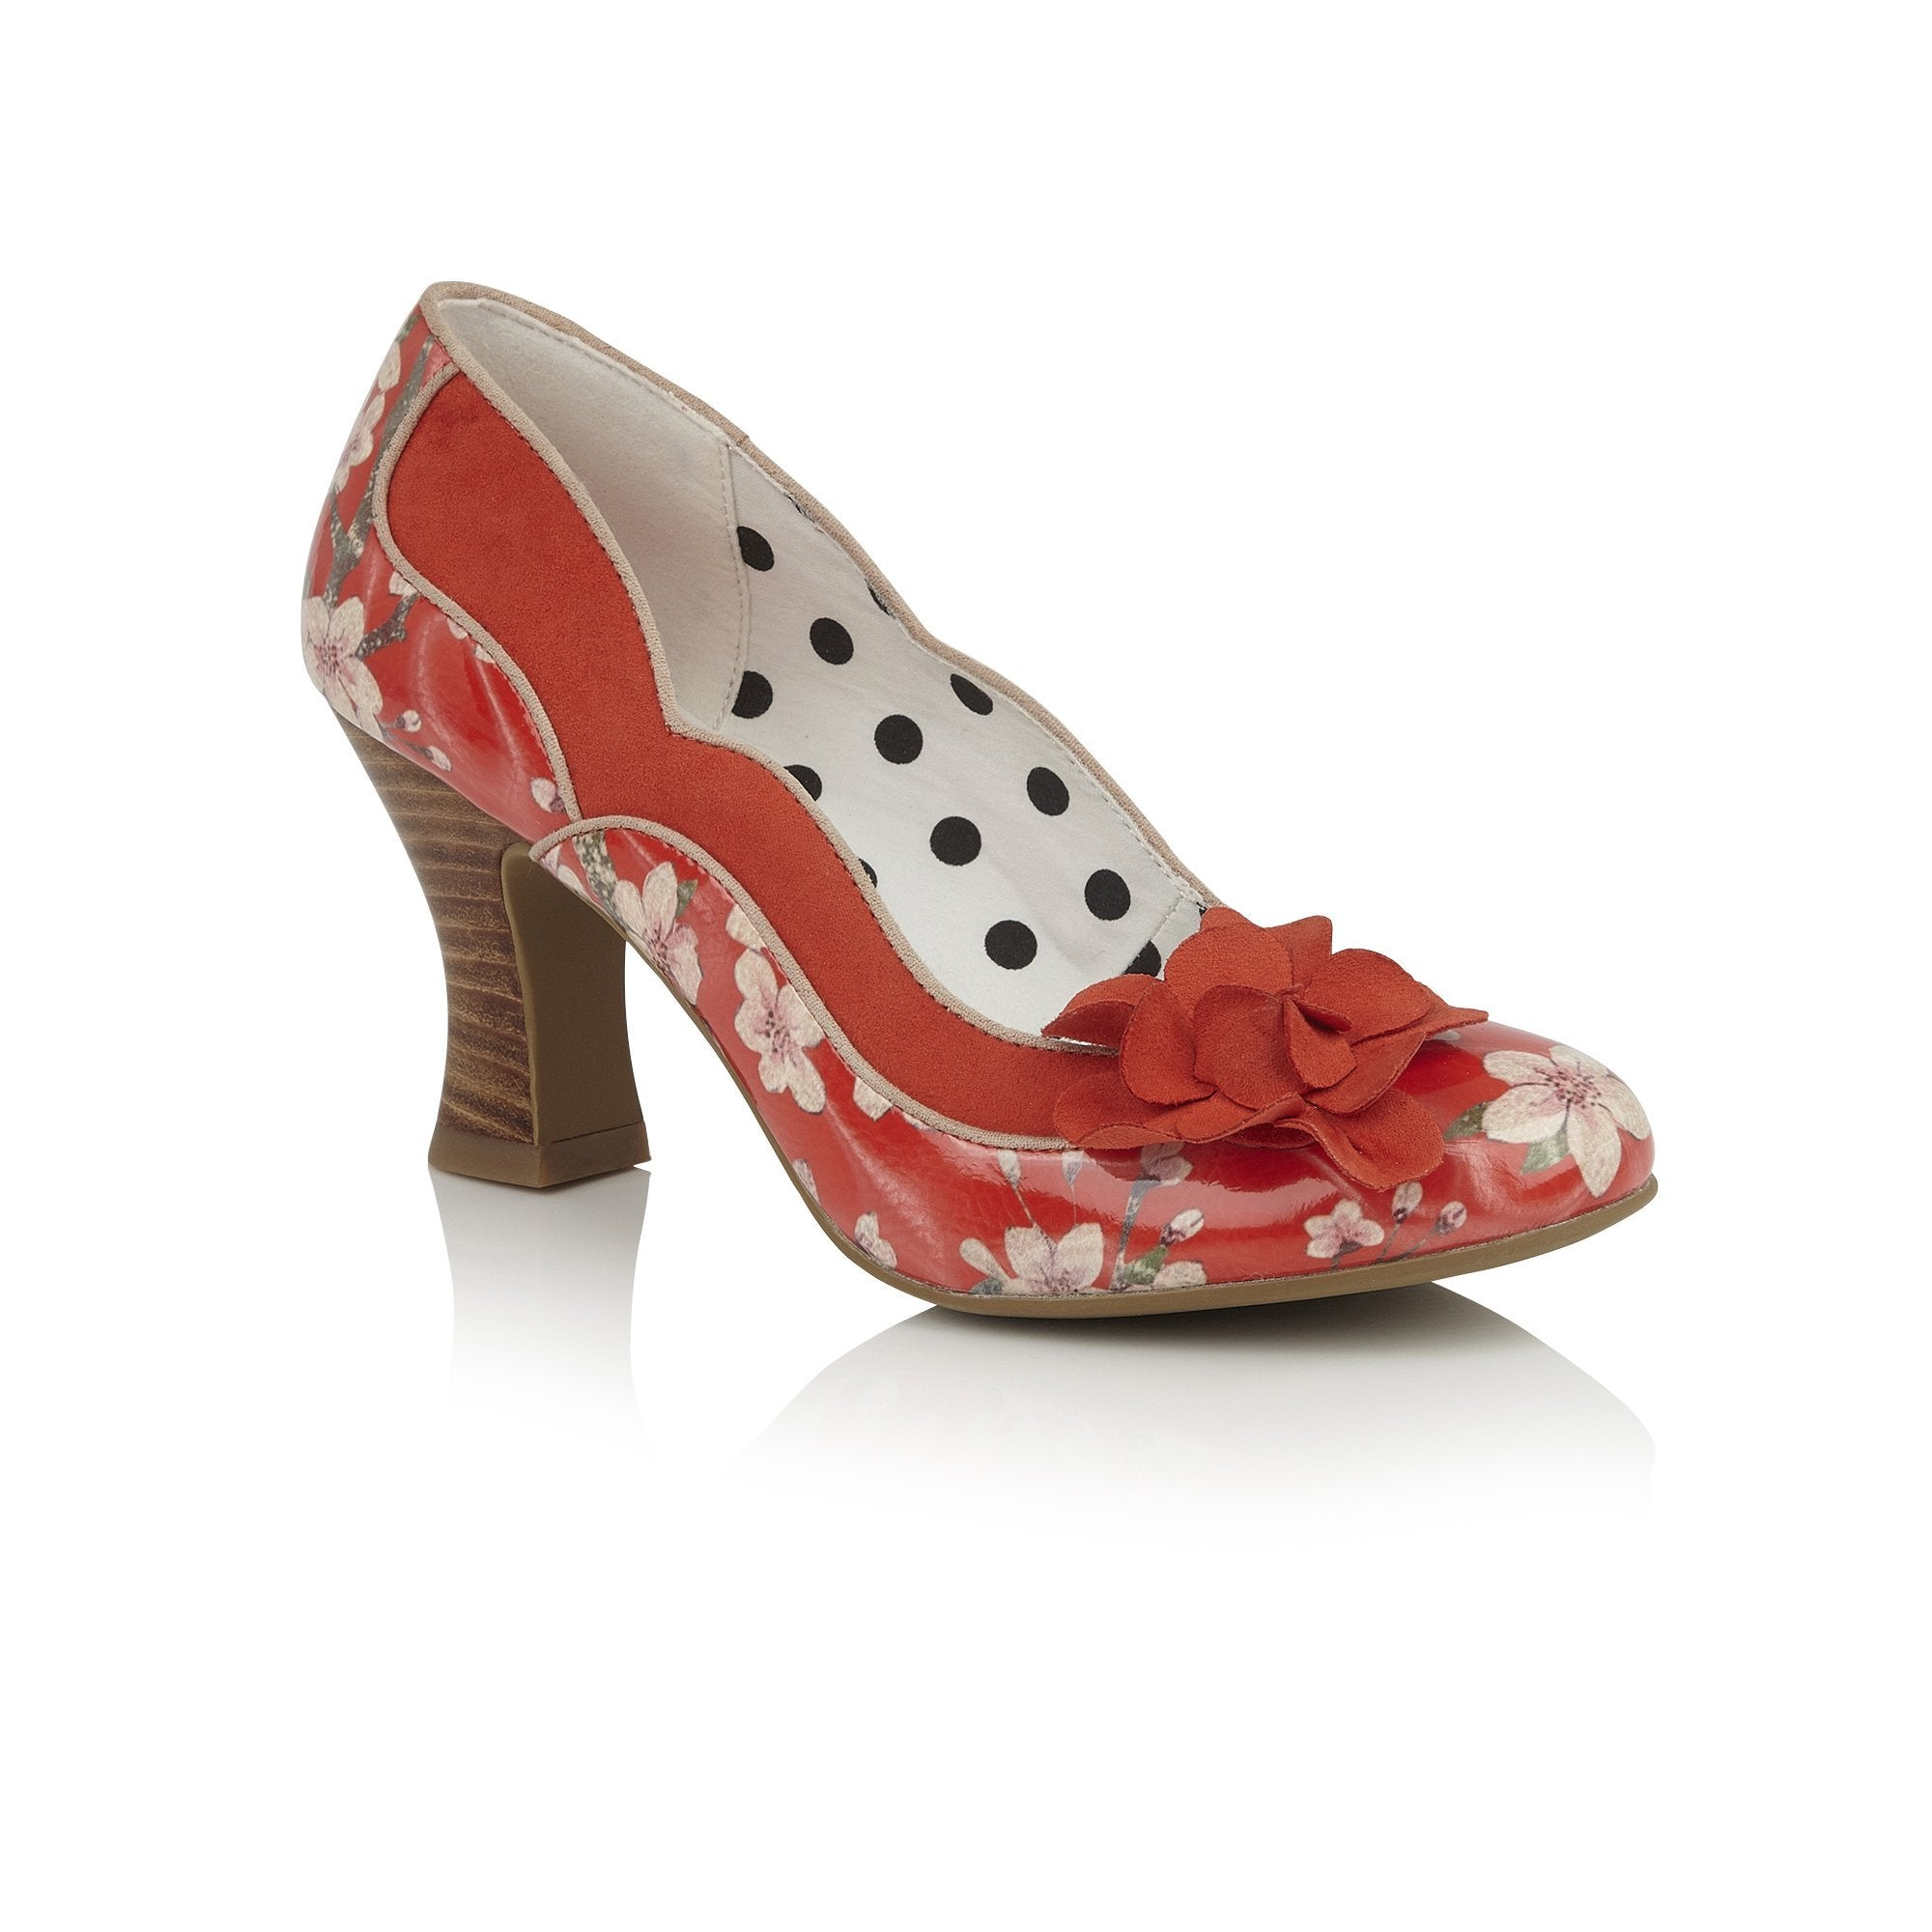 a76dd72b1b Ruby Shoo Coral Red Floral Heeled Corsage Viola Court Shoes